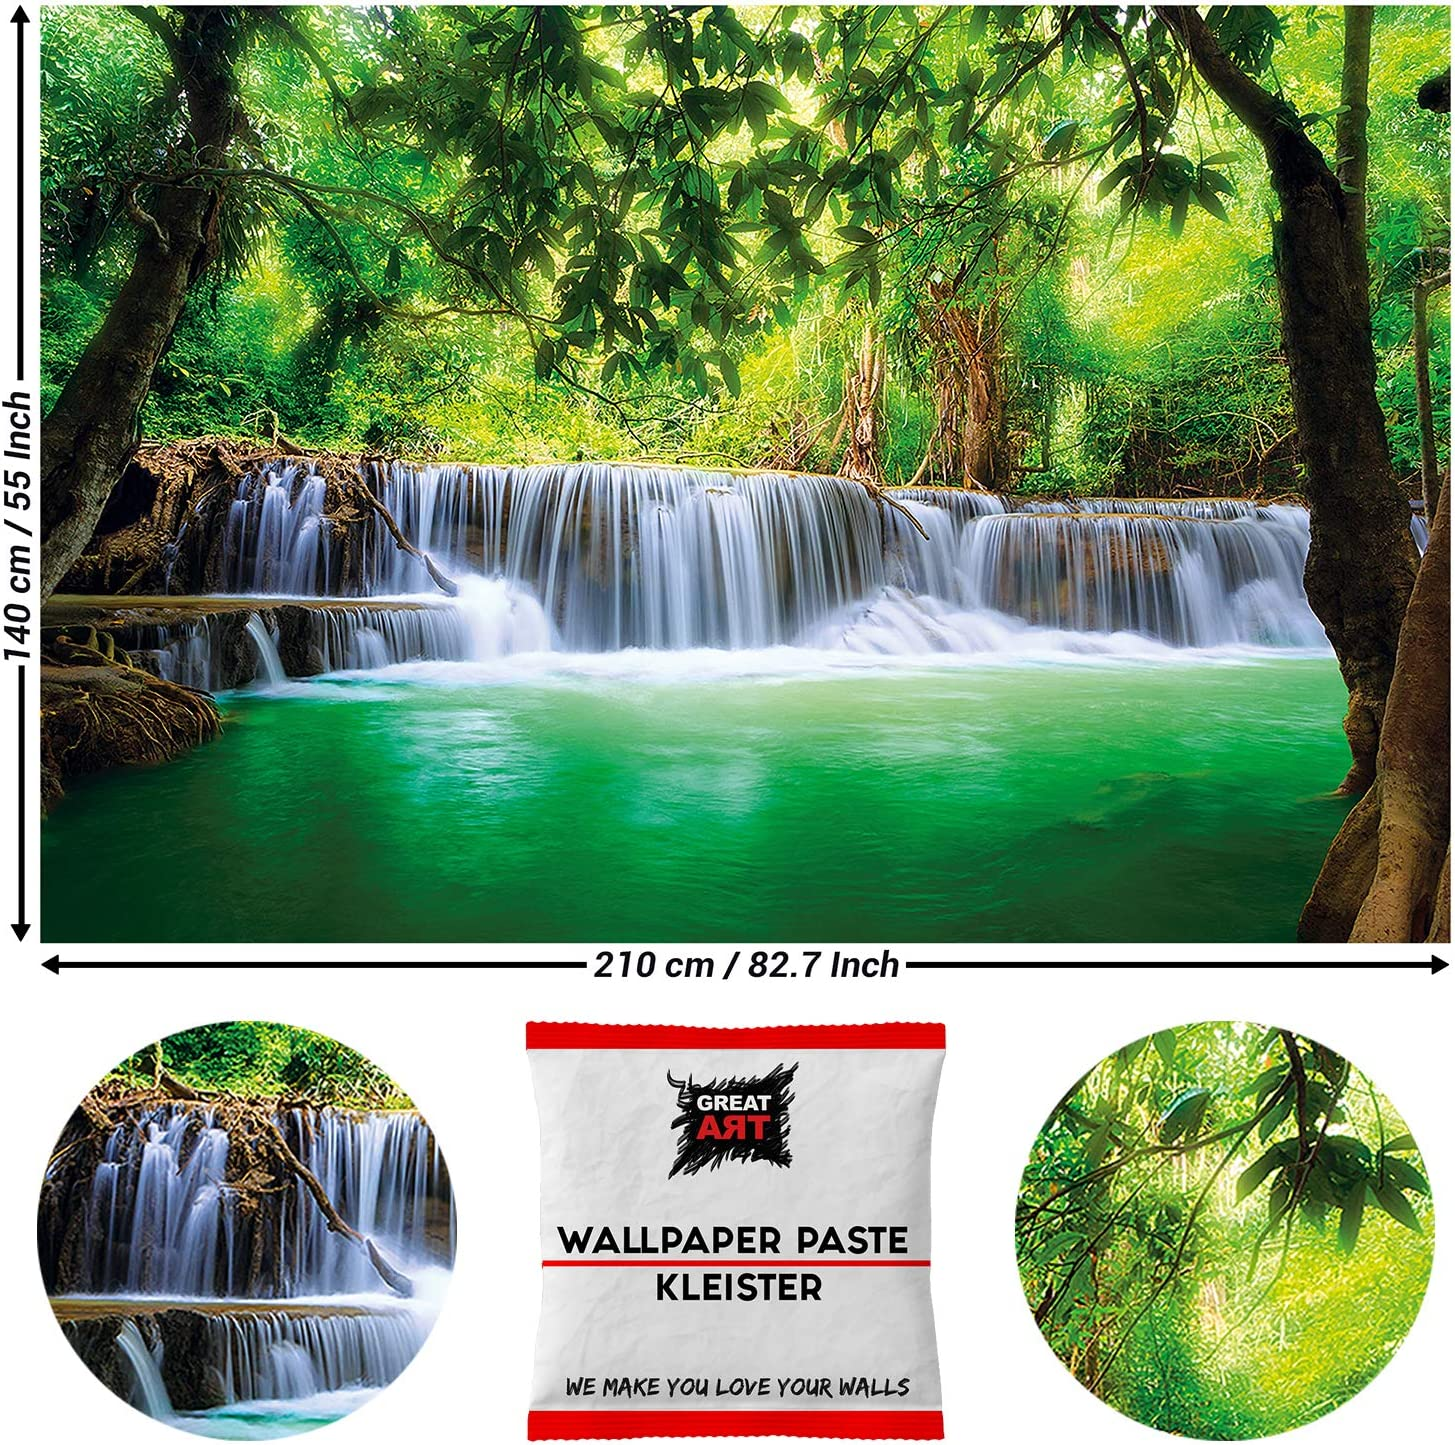 Great Art Photo Wallpaper Tropical Waterfall Decoration 210x140 cm / 82.7x55in – Rain-Forest Jungle River Nature Landscape Thailand Mural – 5 Pieces Includes Paste